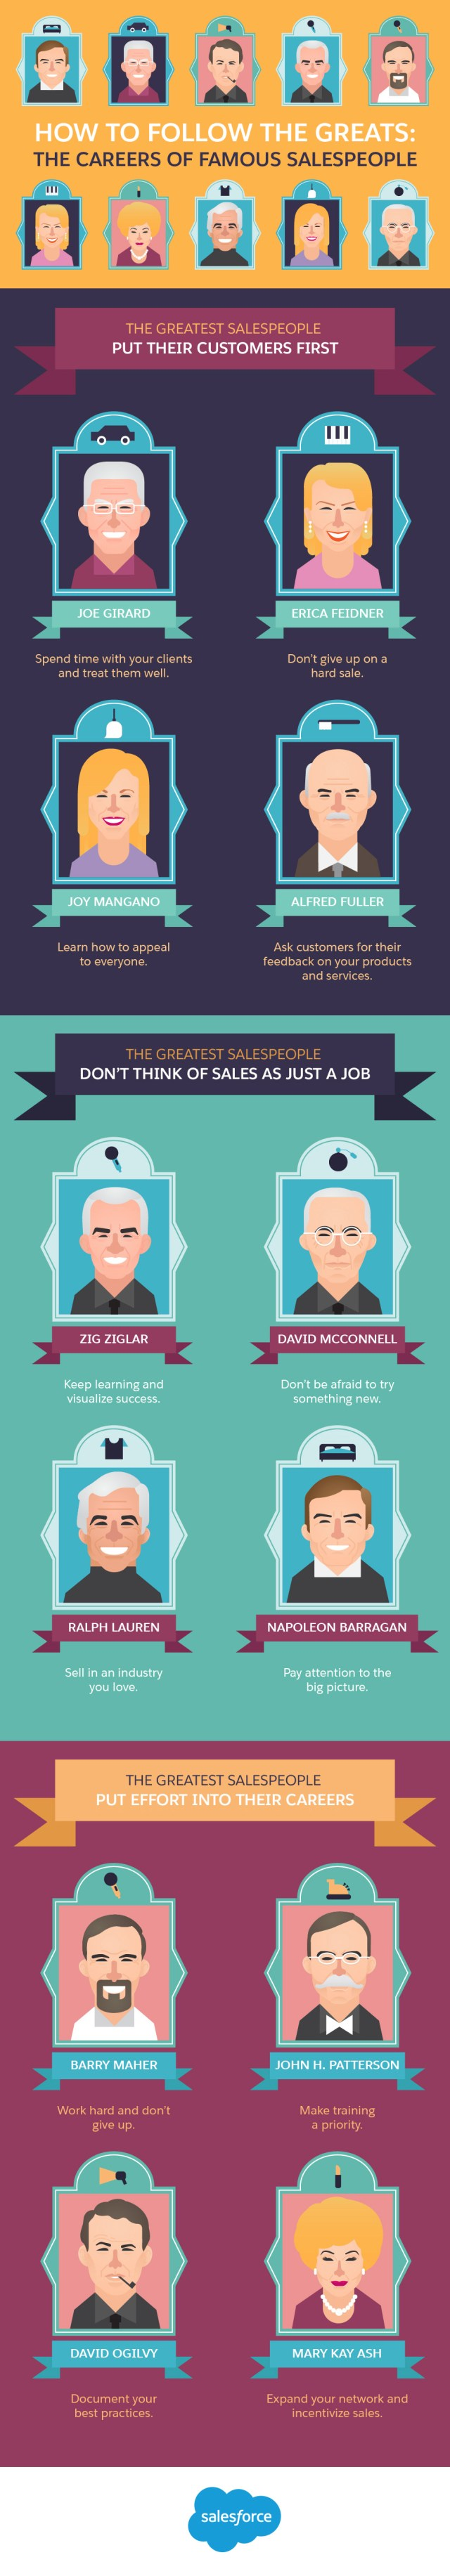 How to Follow the Greats: The Careers of Famous Salespeople